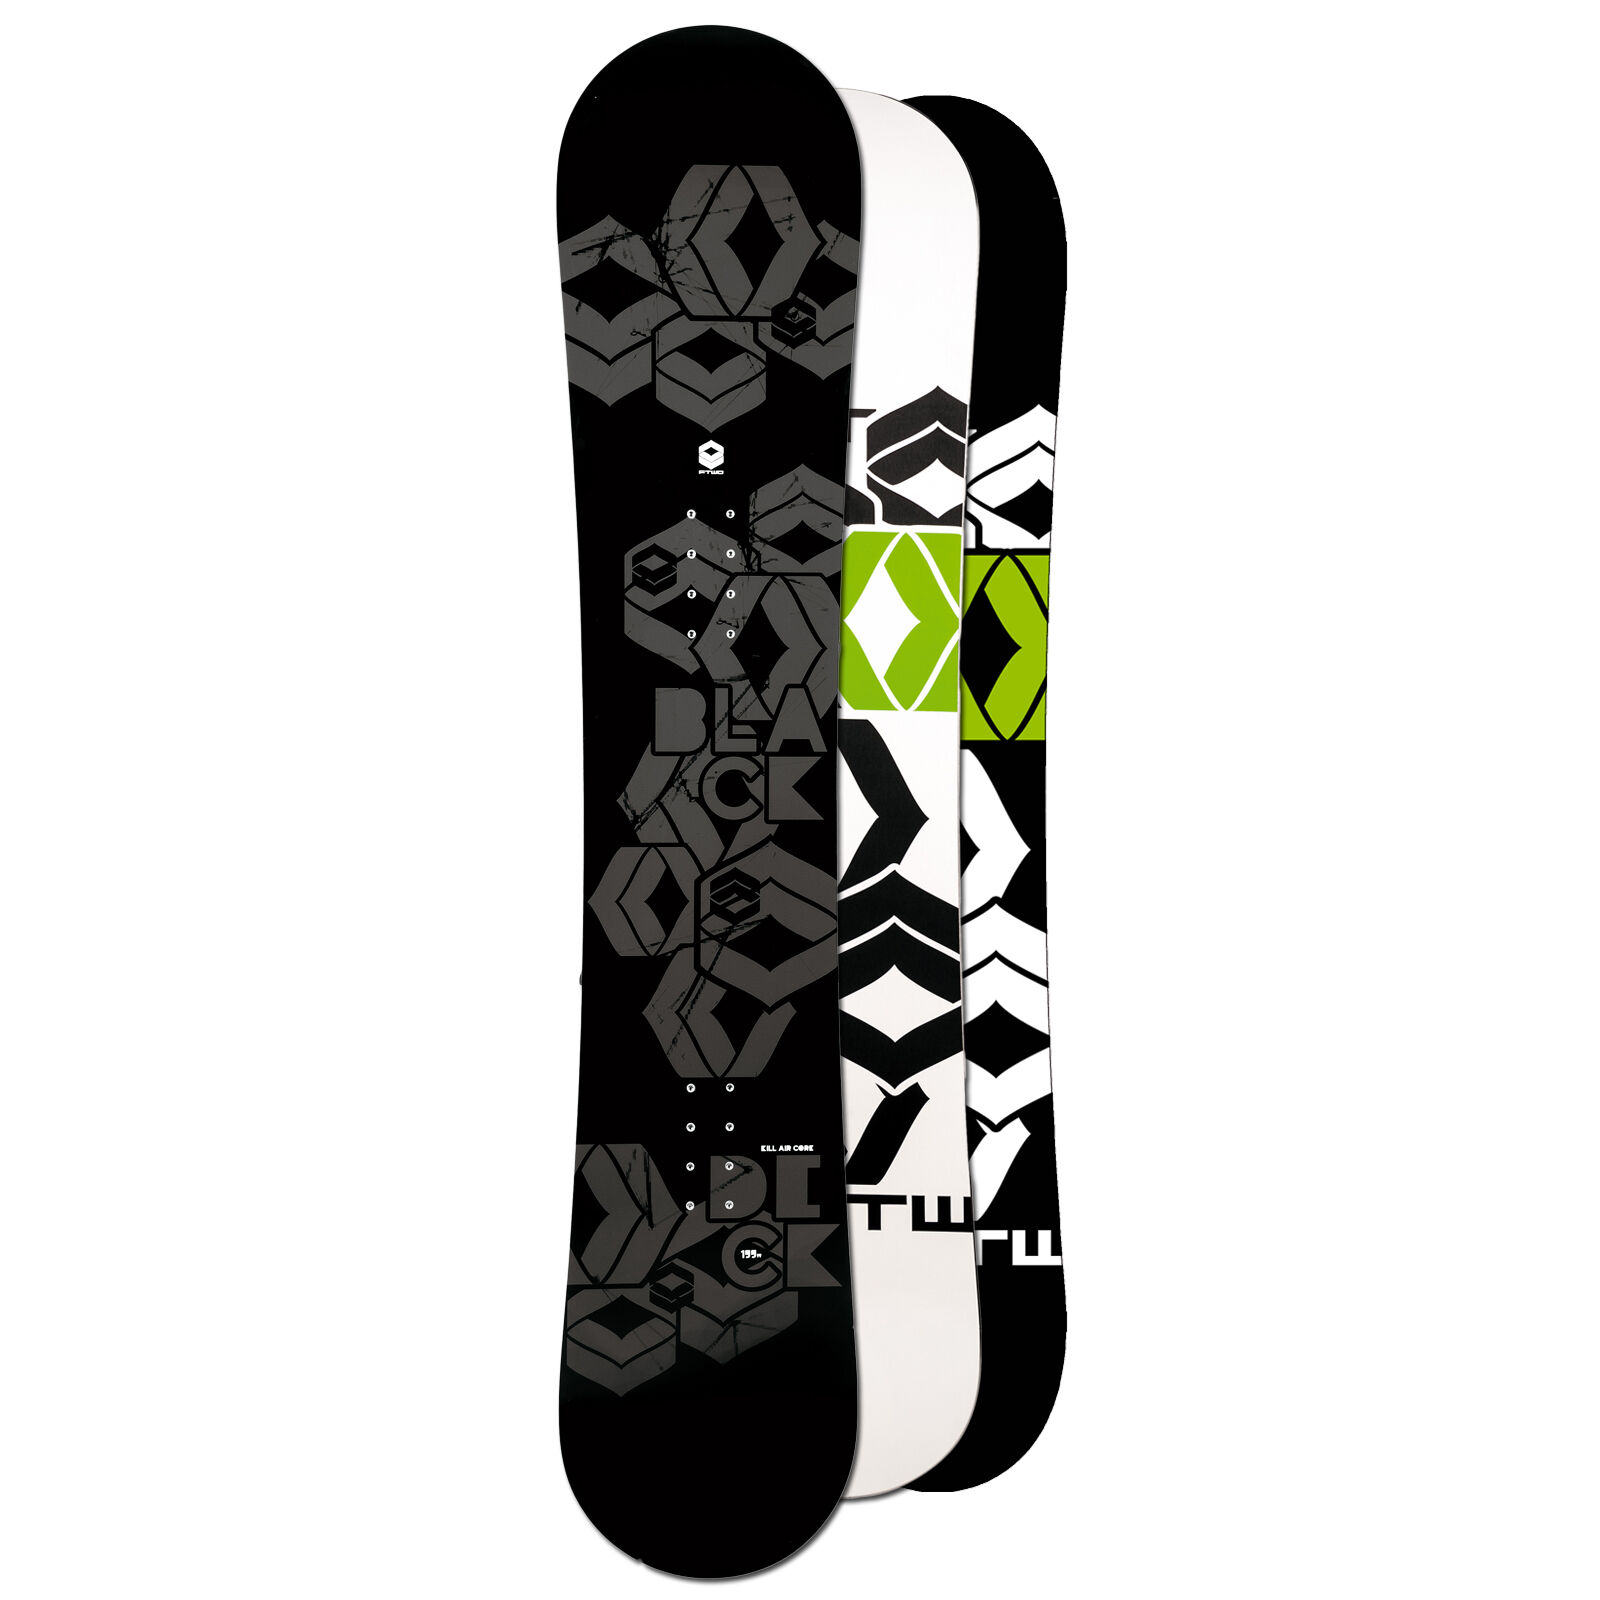 Ftwo Hombre Freestyle Snowboard Cubierta Negra 154cm Camber